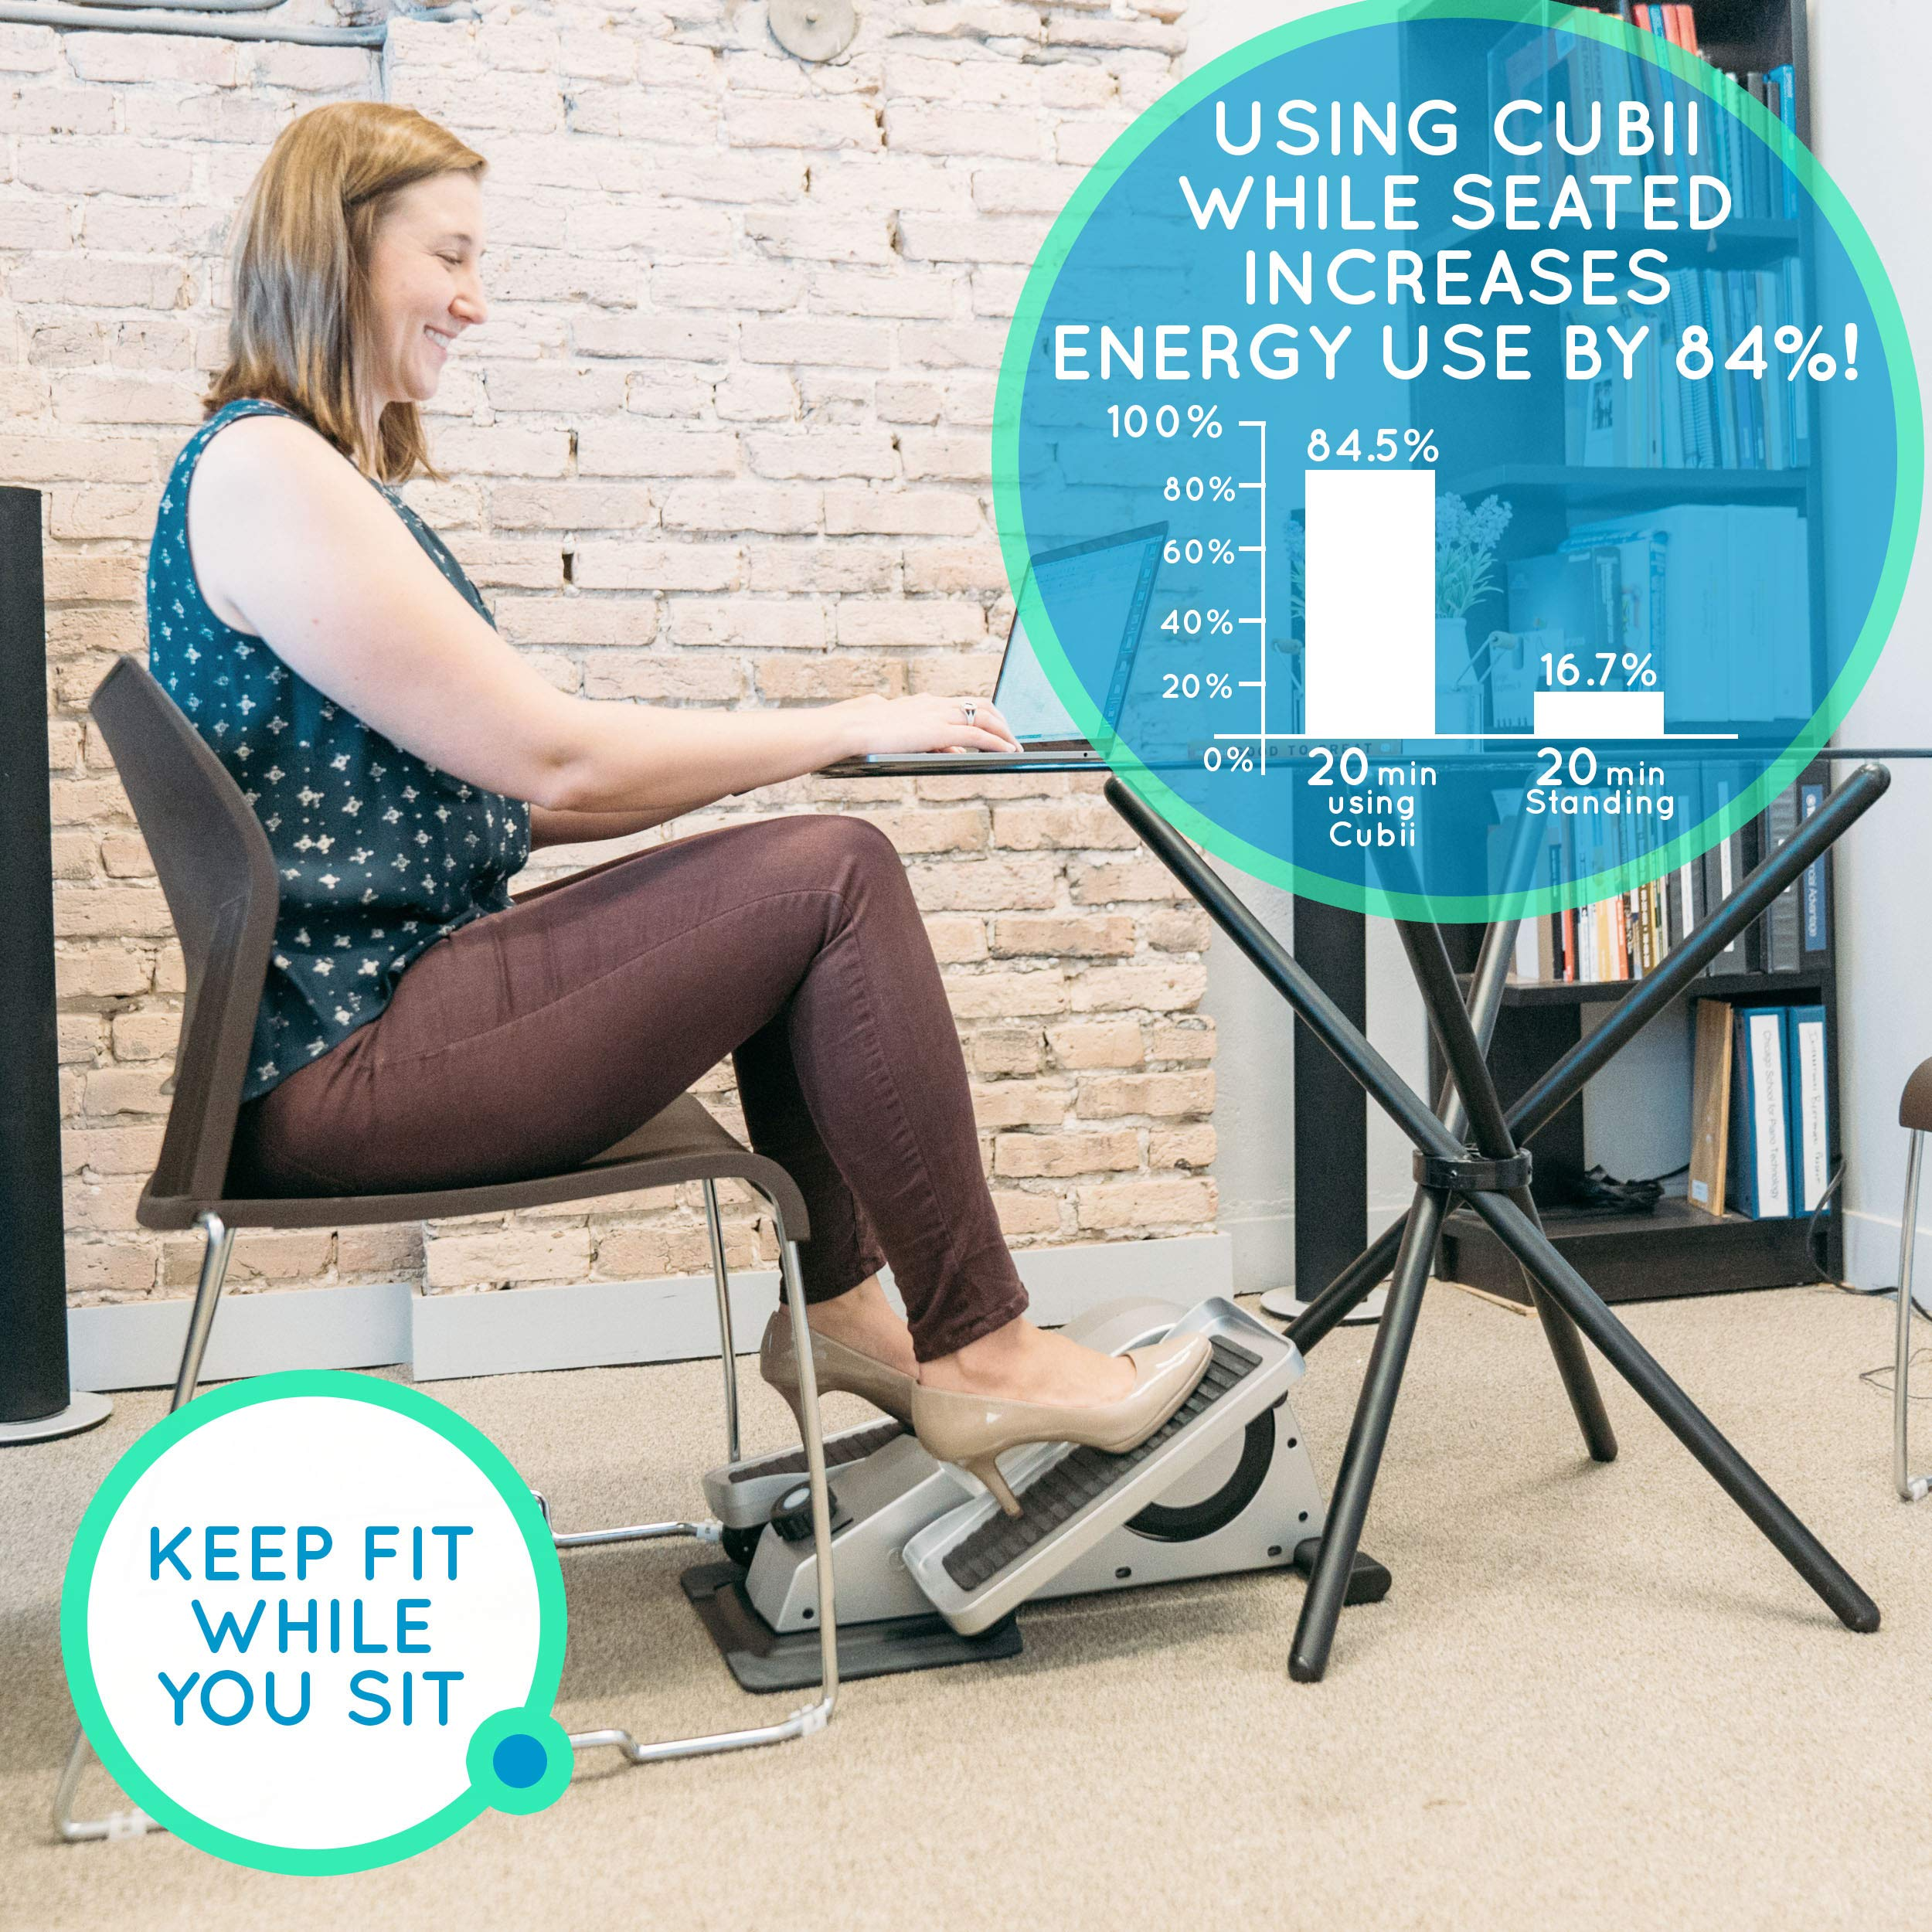 Cubii Pro Under Desk Elliptical, Bluetooth Enabled, Sync with Fitbit and HealthKit, Adjustable Resistance, Easy Assembly (Noir) by Cubii (Image #4)